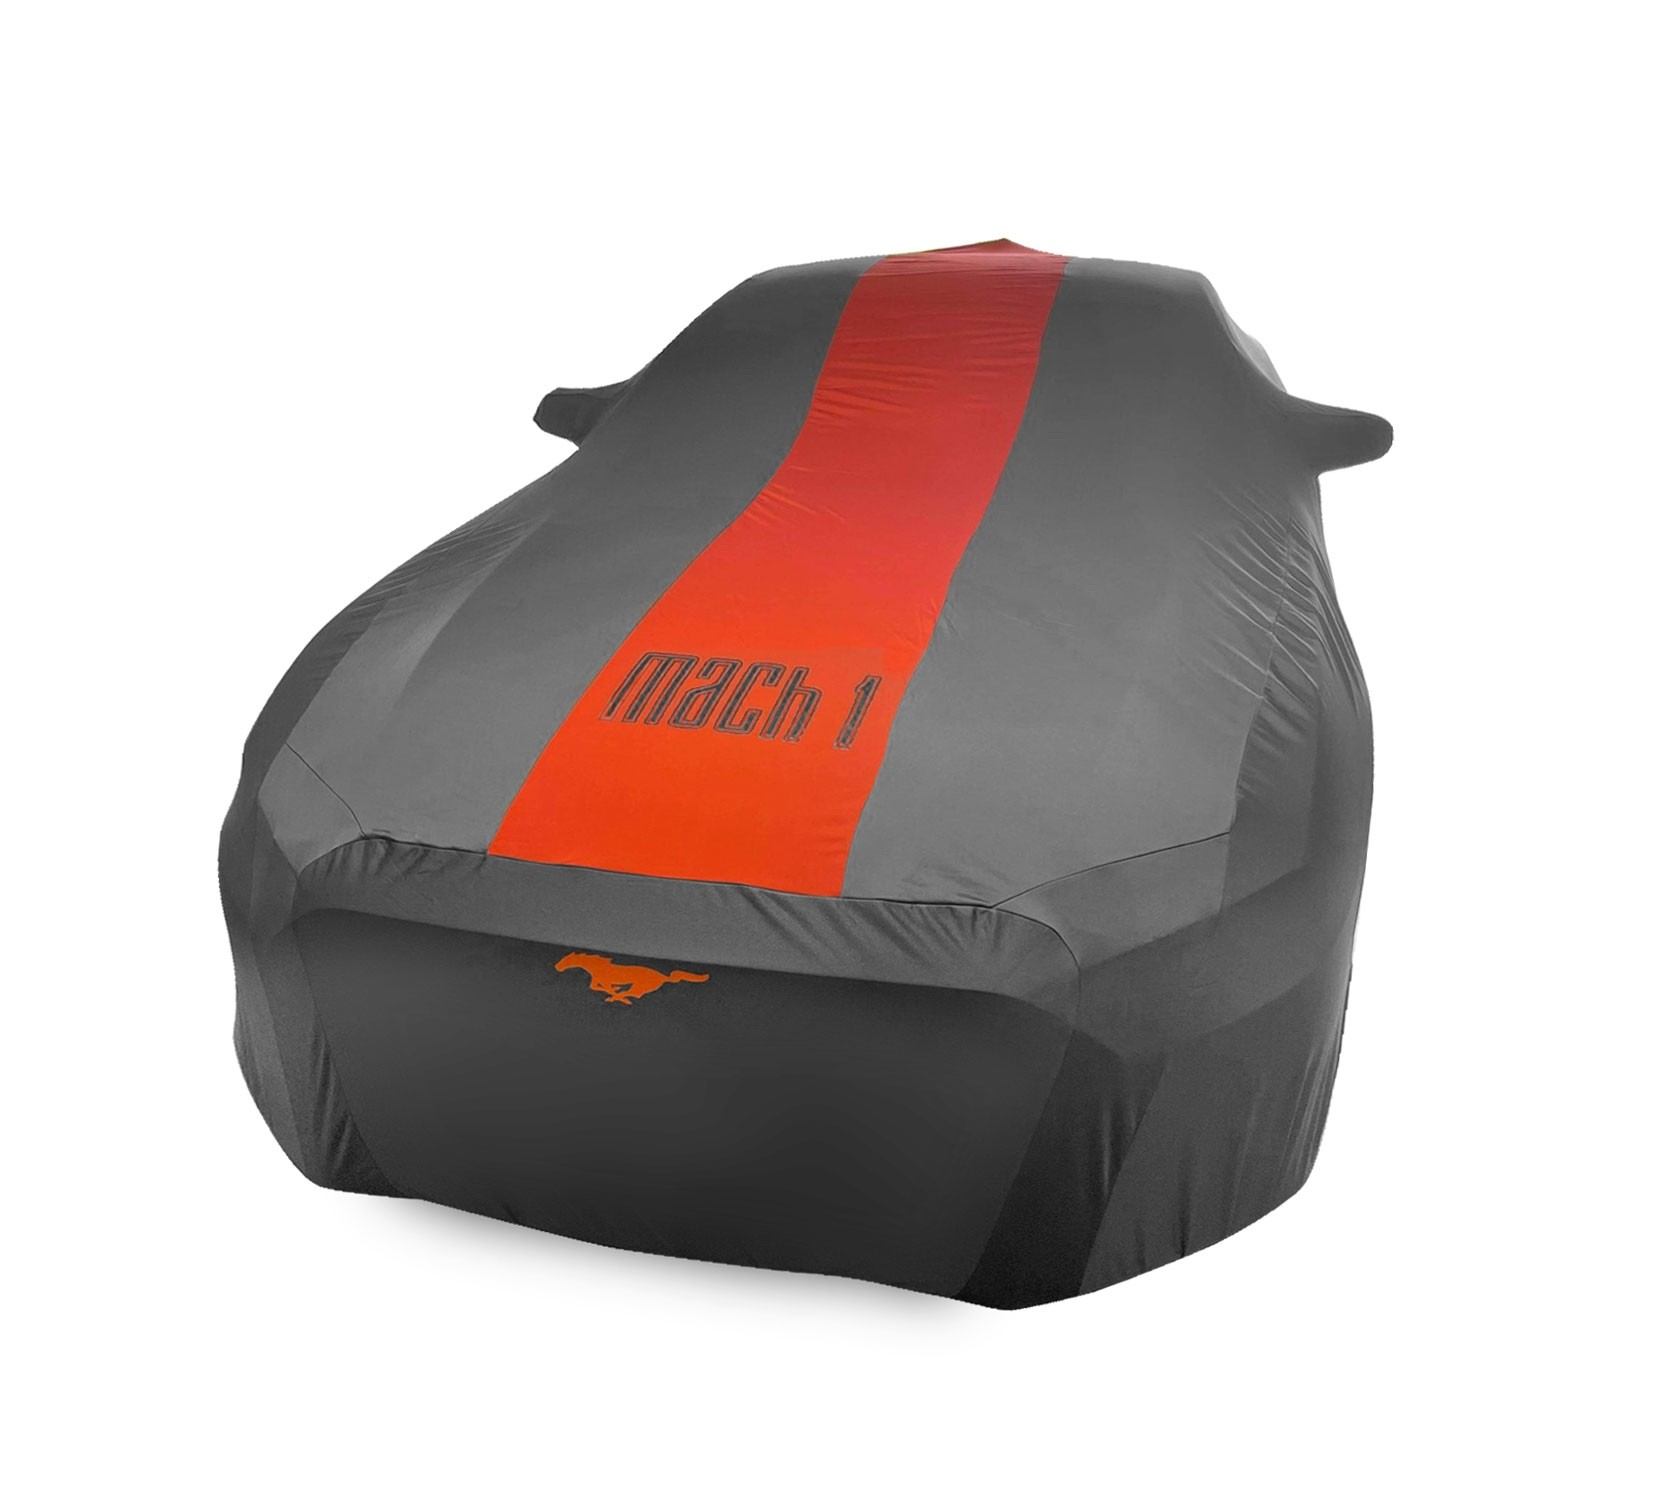 2021 Mustang Mach 1 Small Wing OEM Genuine Ford Indoor Car Cover Grey & Orange